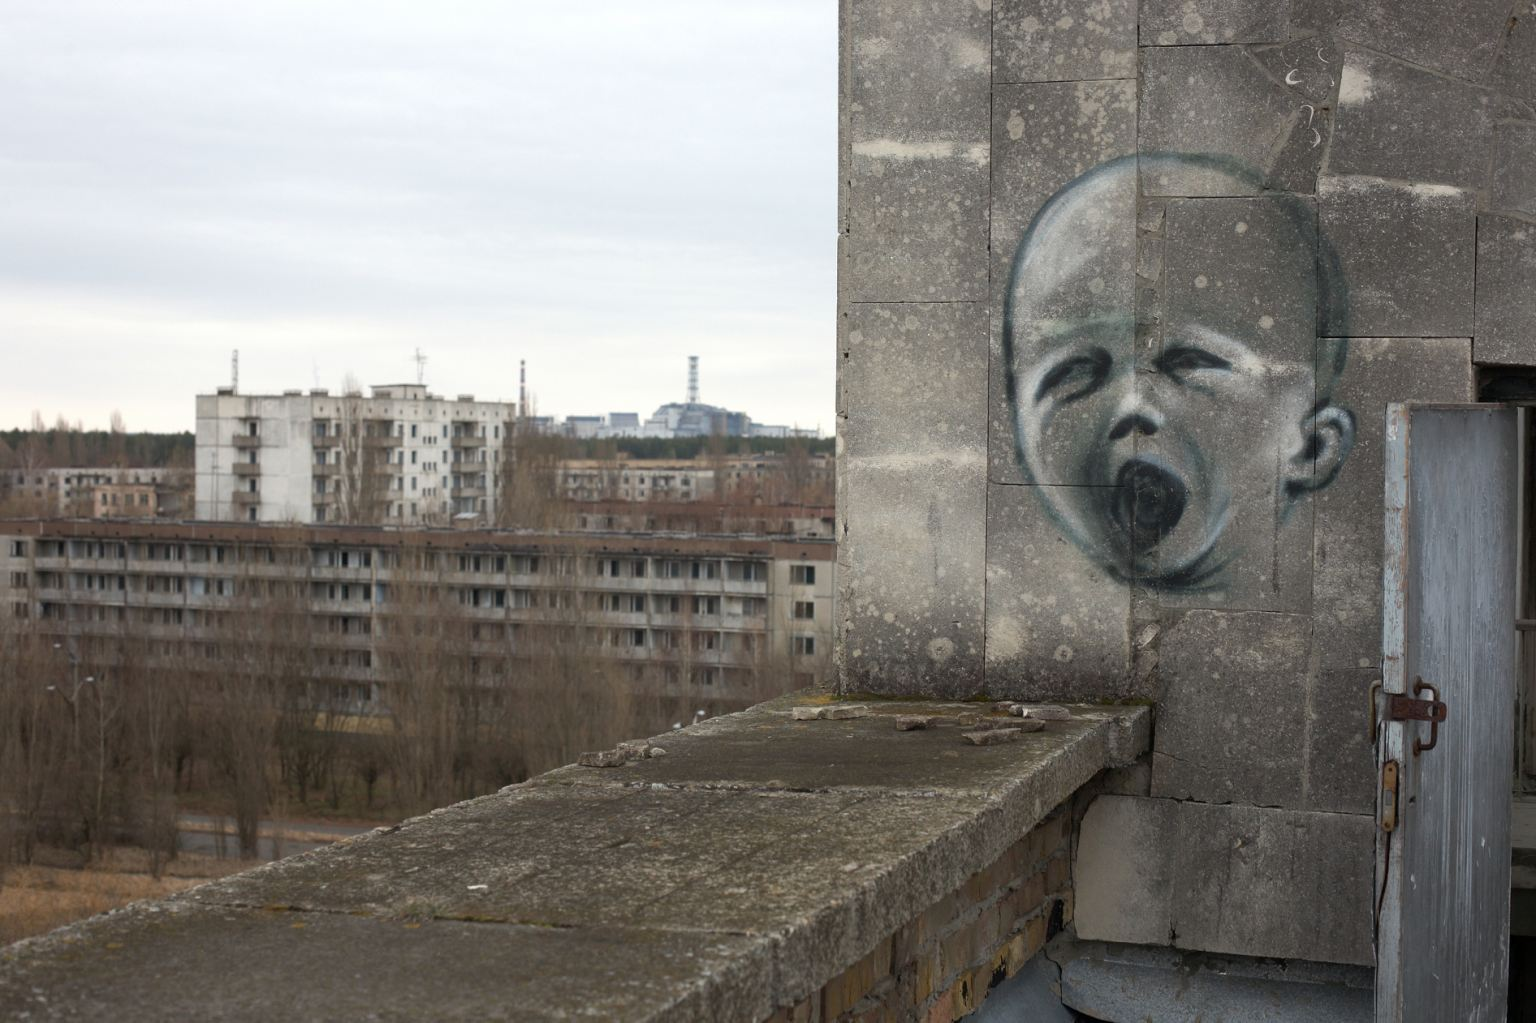 Graffiti of a crying baby on a wall, Chernobyl Power Plant, Chernobyl, Ukraine